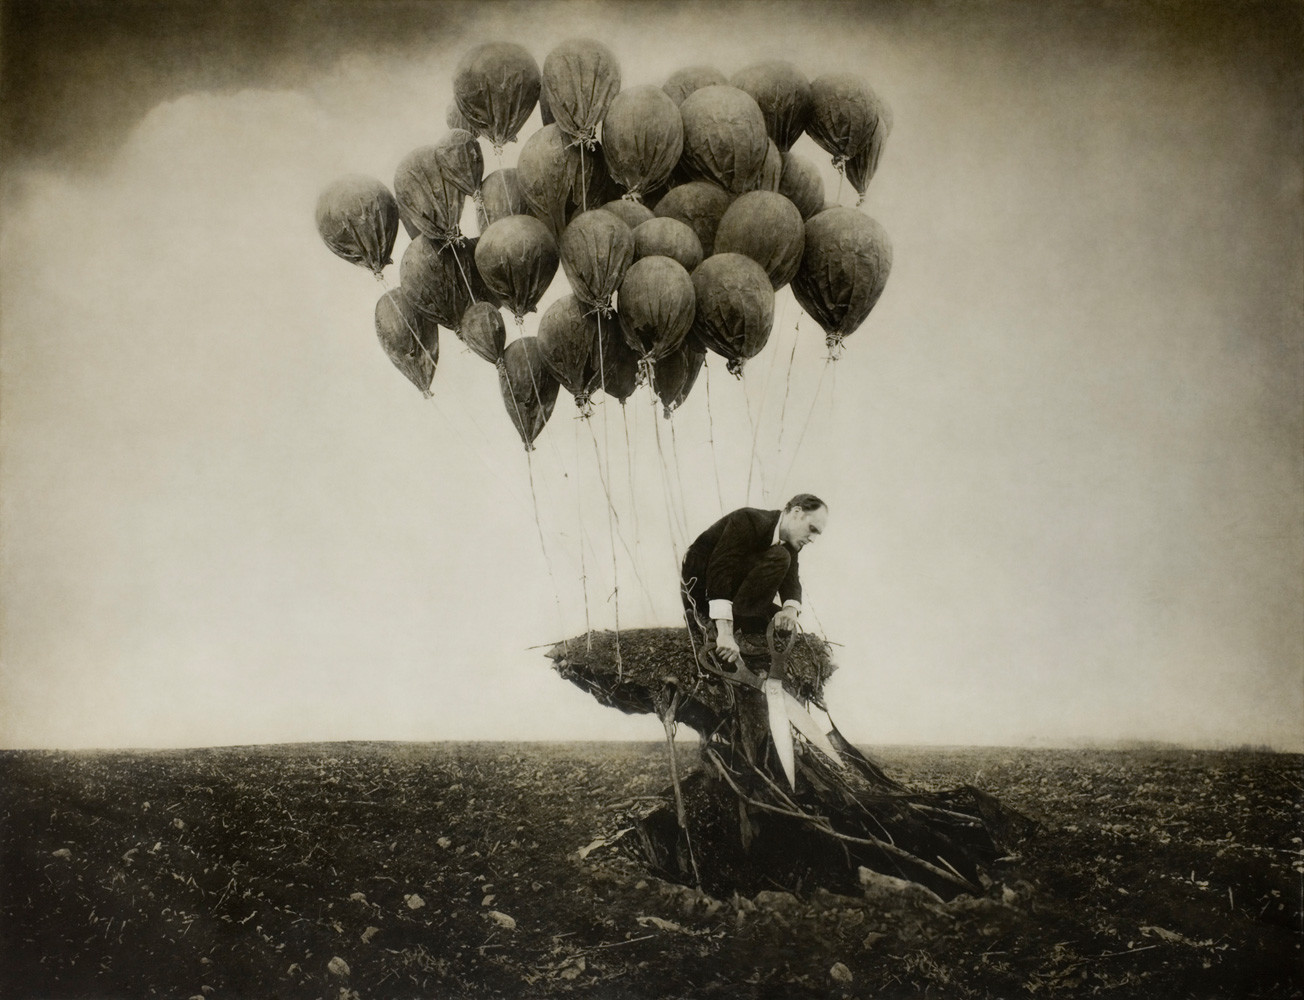 E.Z.M. – 01/02/17 (Robert and Shana ParkeHarrison, 2010's)